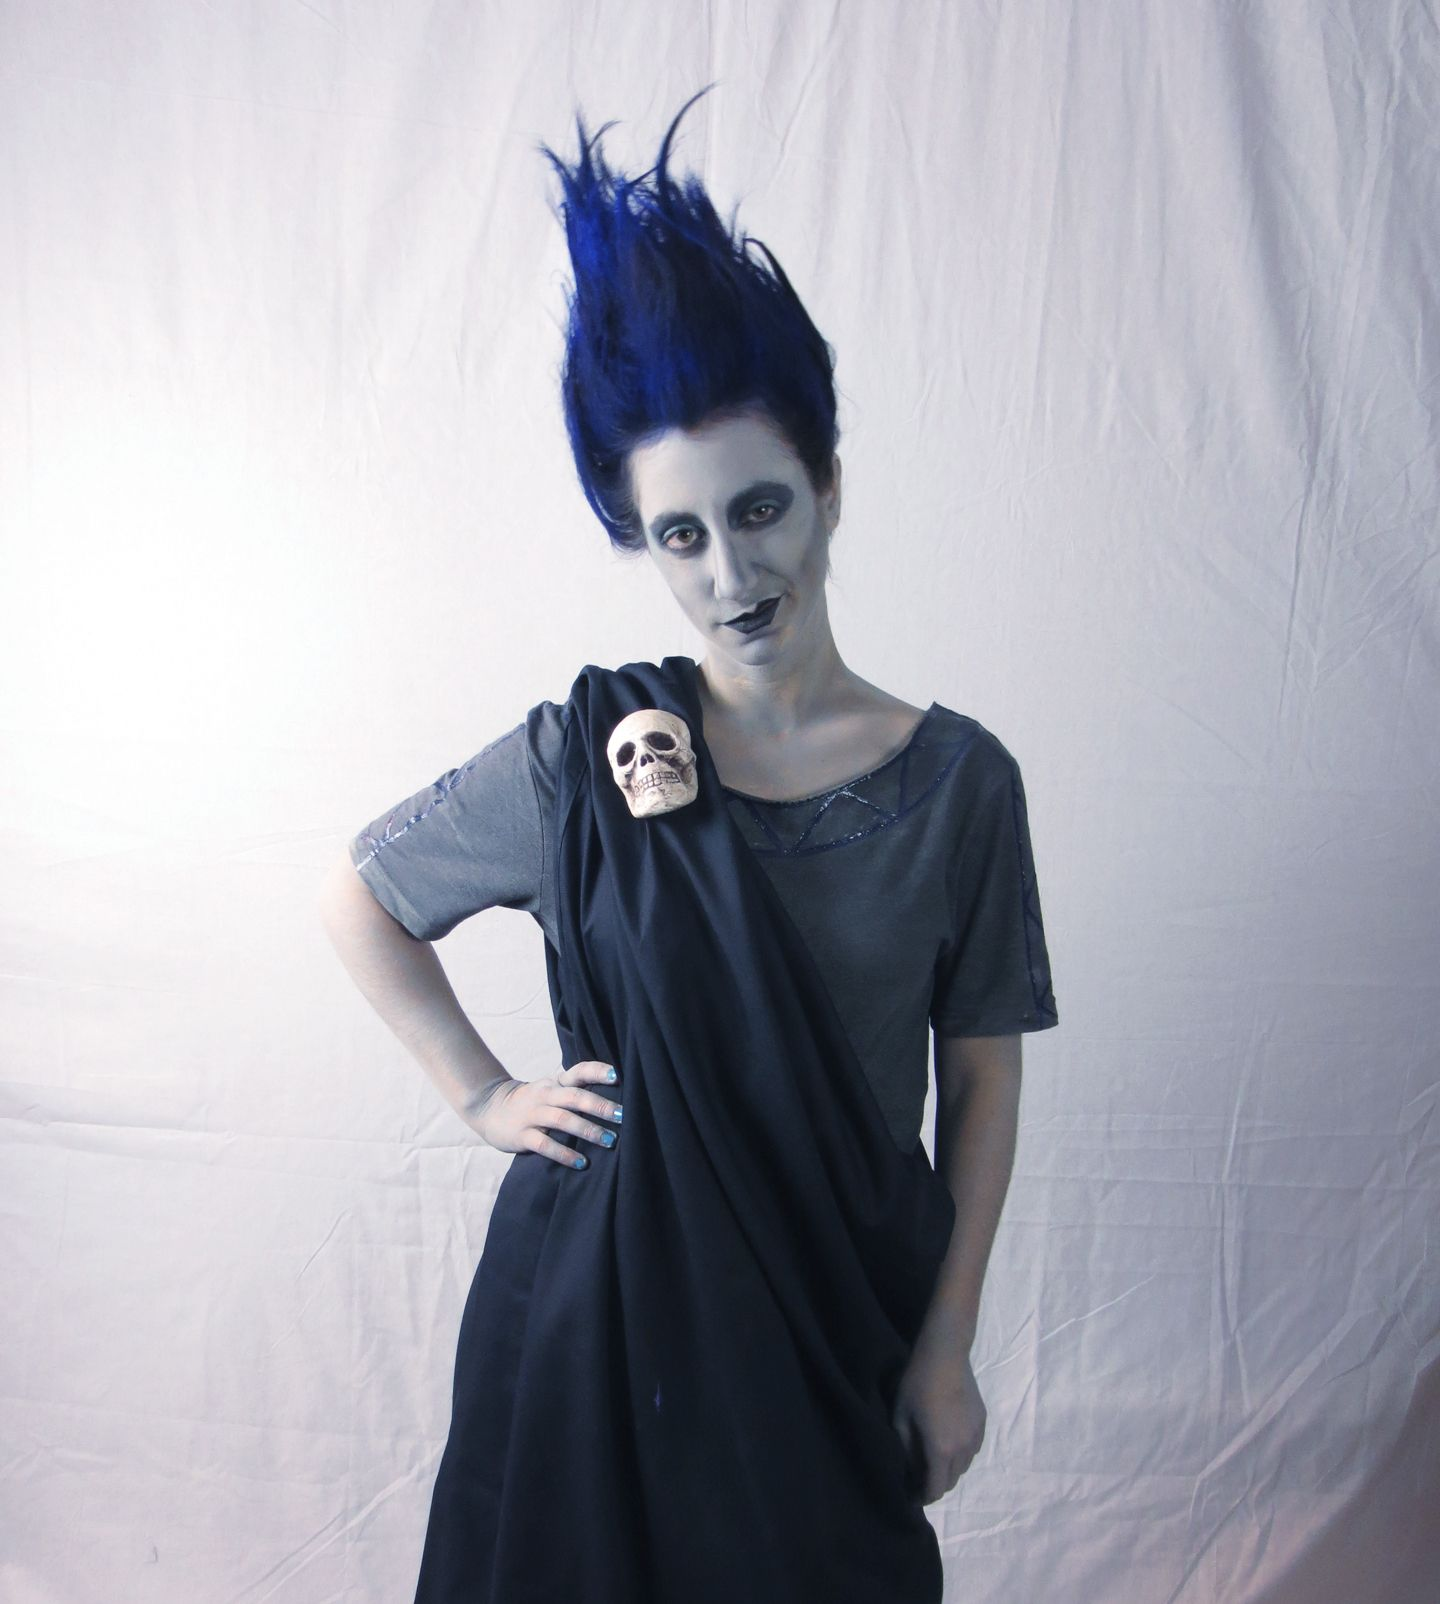 Disneyu0027s Hades costume for Halloween! A super easy DIY using a black bed sheet and  sc 1 st  Pinterest & Disneyu0027s Hades costume for Halloween! A super easy DIY using a black ...